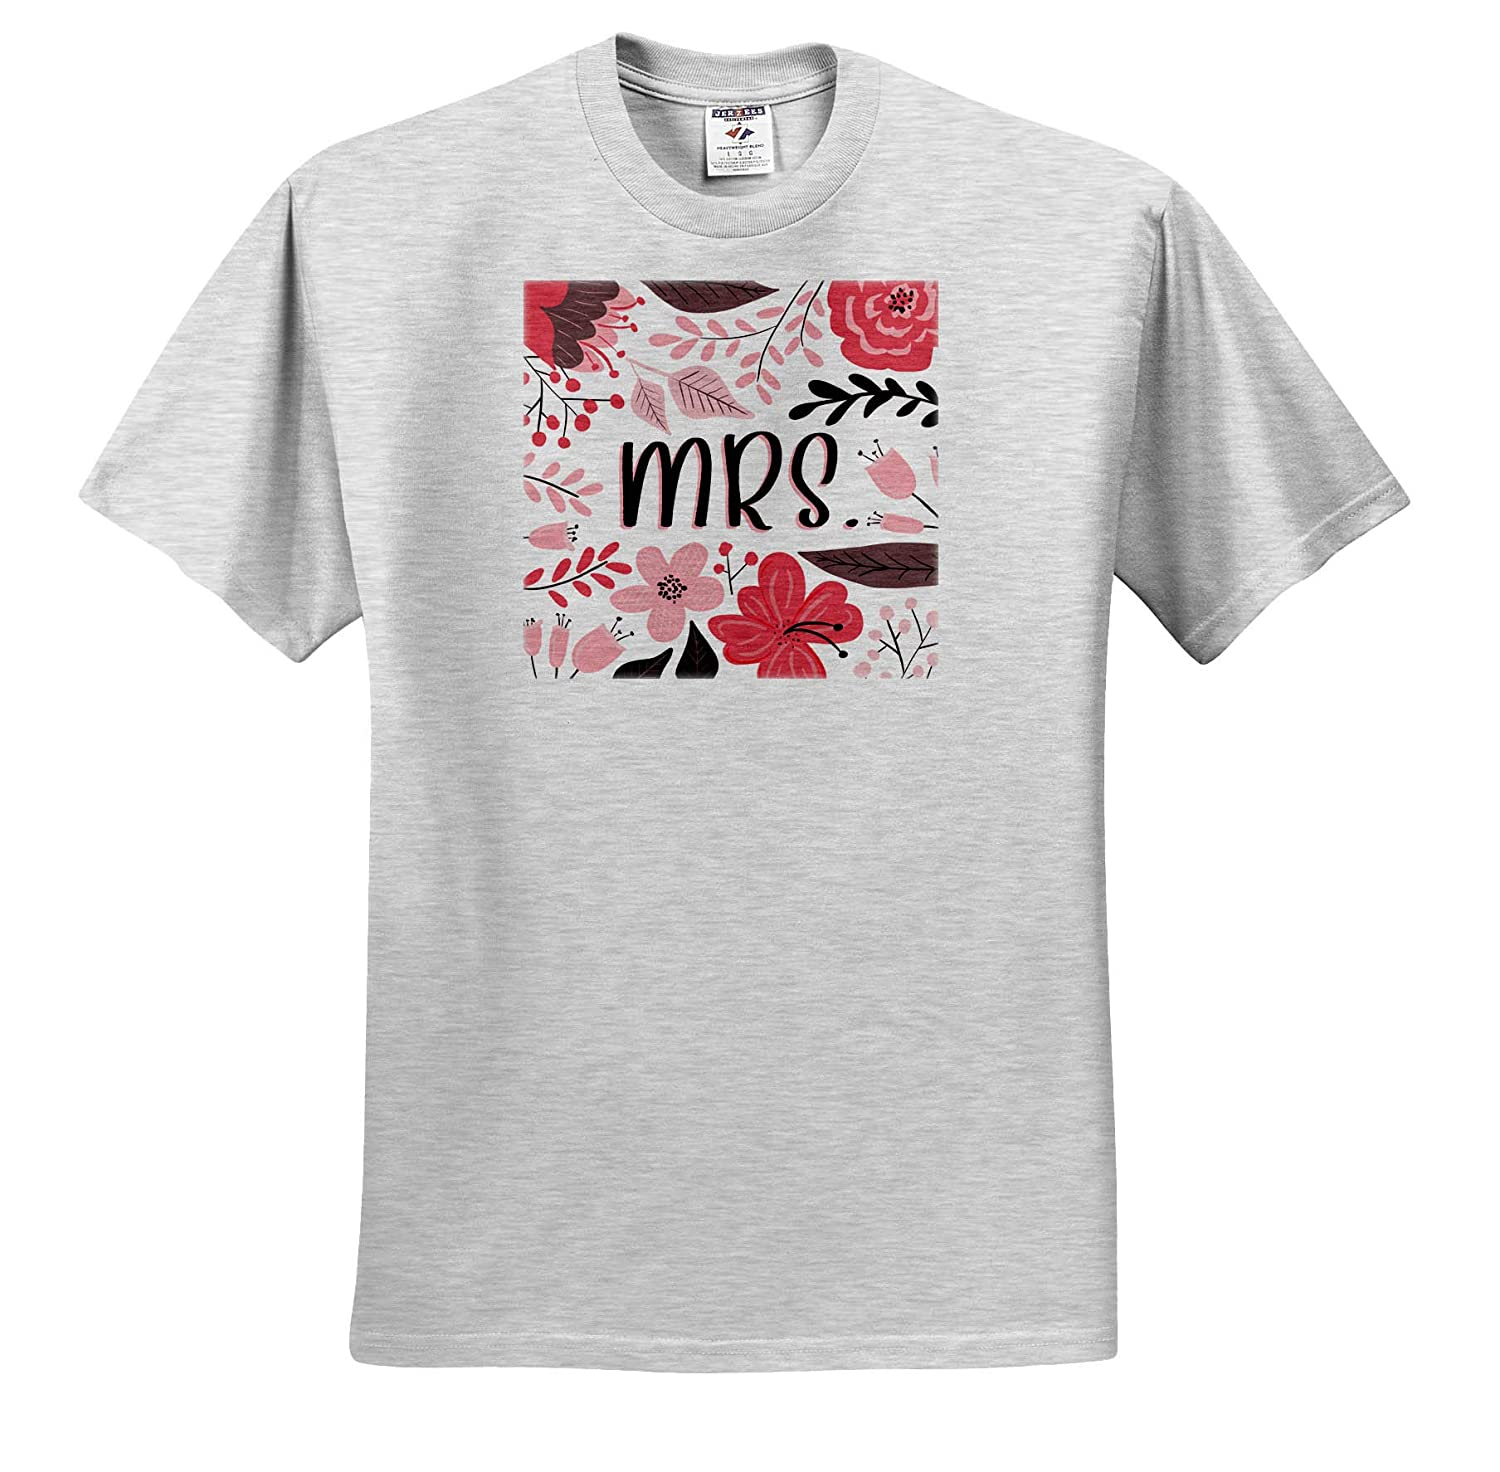 ts/_319842 Adult T-Shirt XL - Pretty Pink Floral Mrs 3dRose Janna Salak Designs Floral Phrases